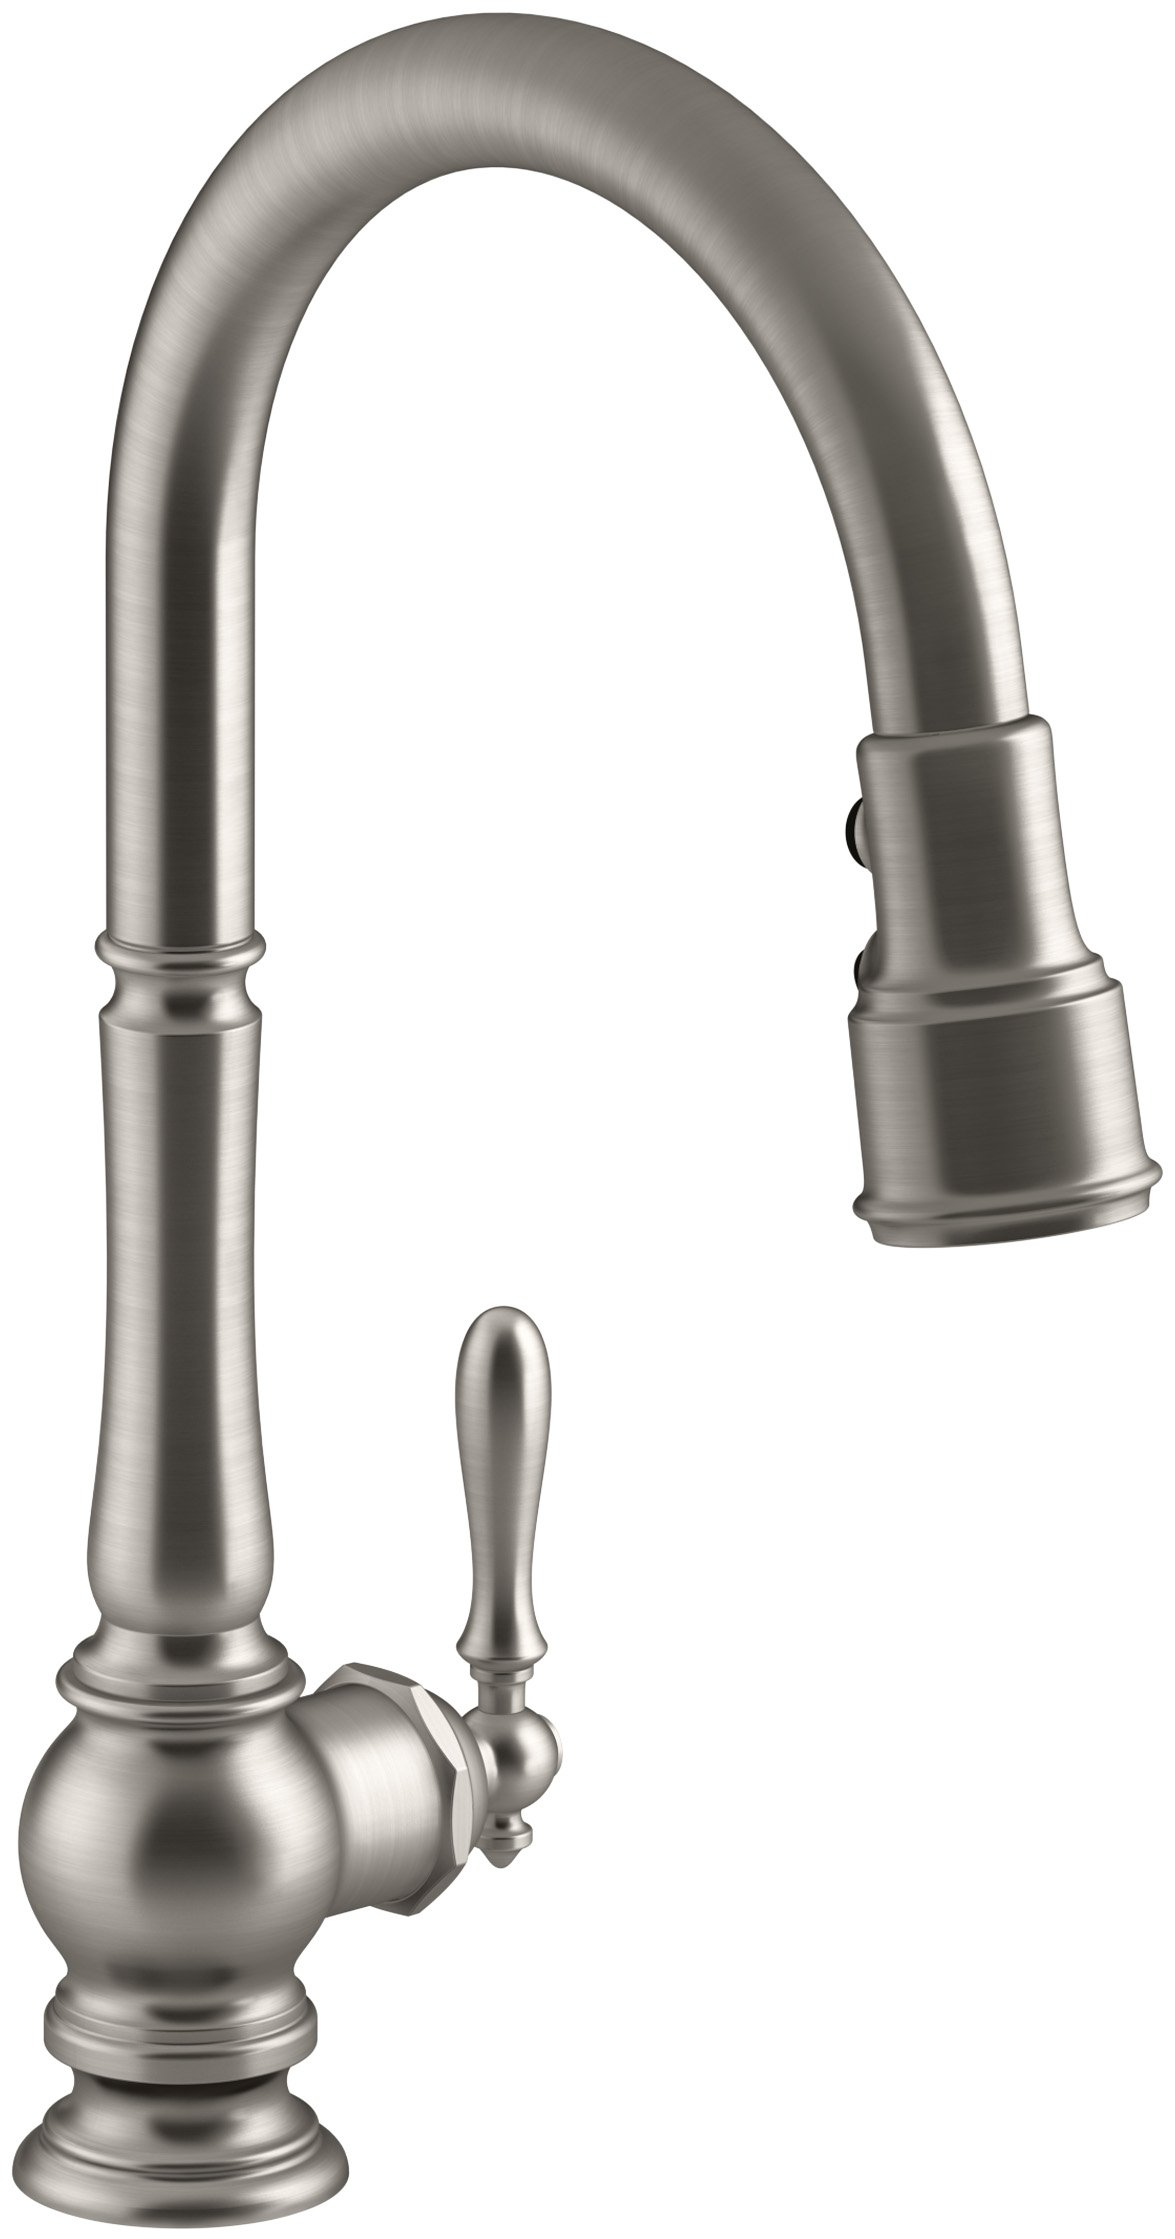 Kohler K-99259-VS Artifacts Single-Hole Kitchen Sink Faucet with 17-5/8-Inch Pull-Down Spout, 3-Function Sprayhead, and Turned Lever Handle, Vibrant Stainless by Kohler (Image #1)